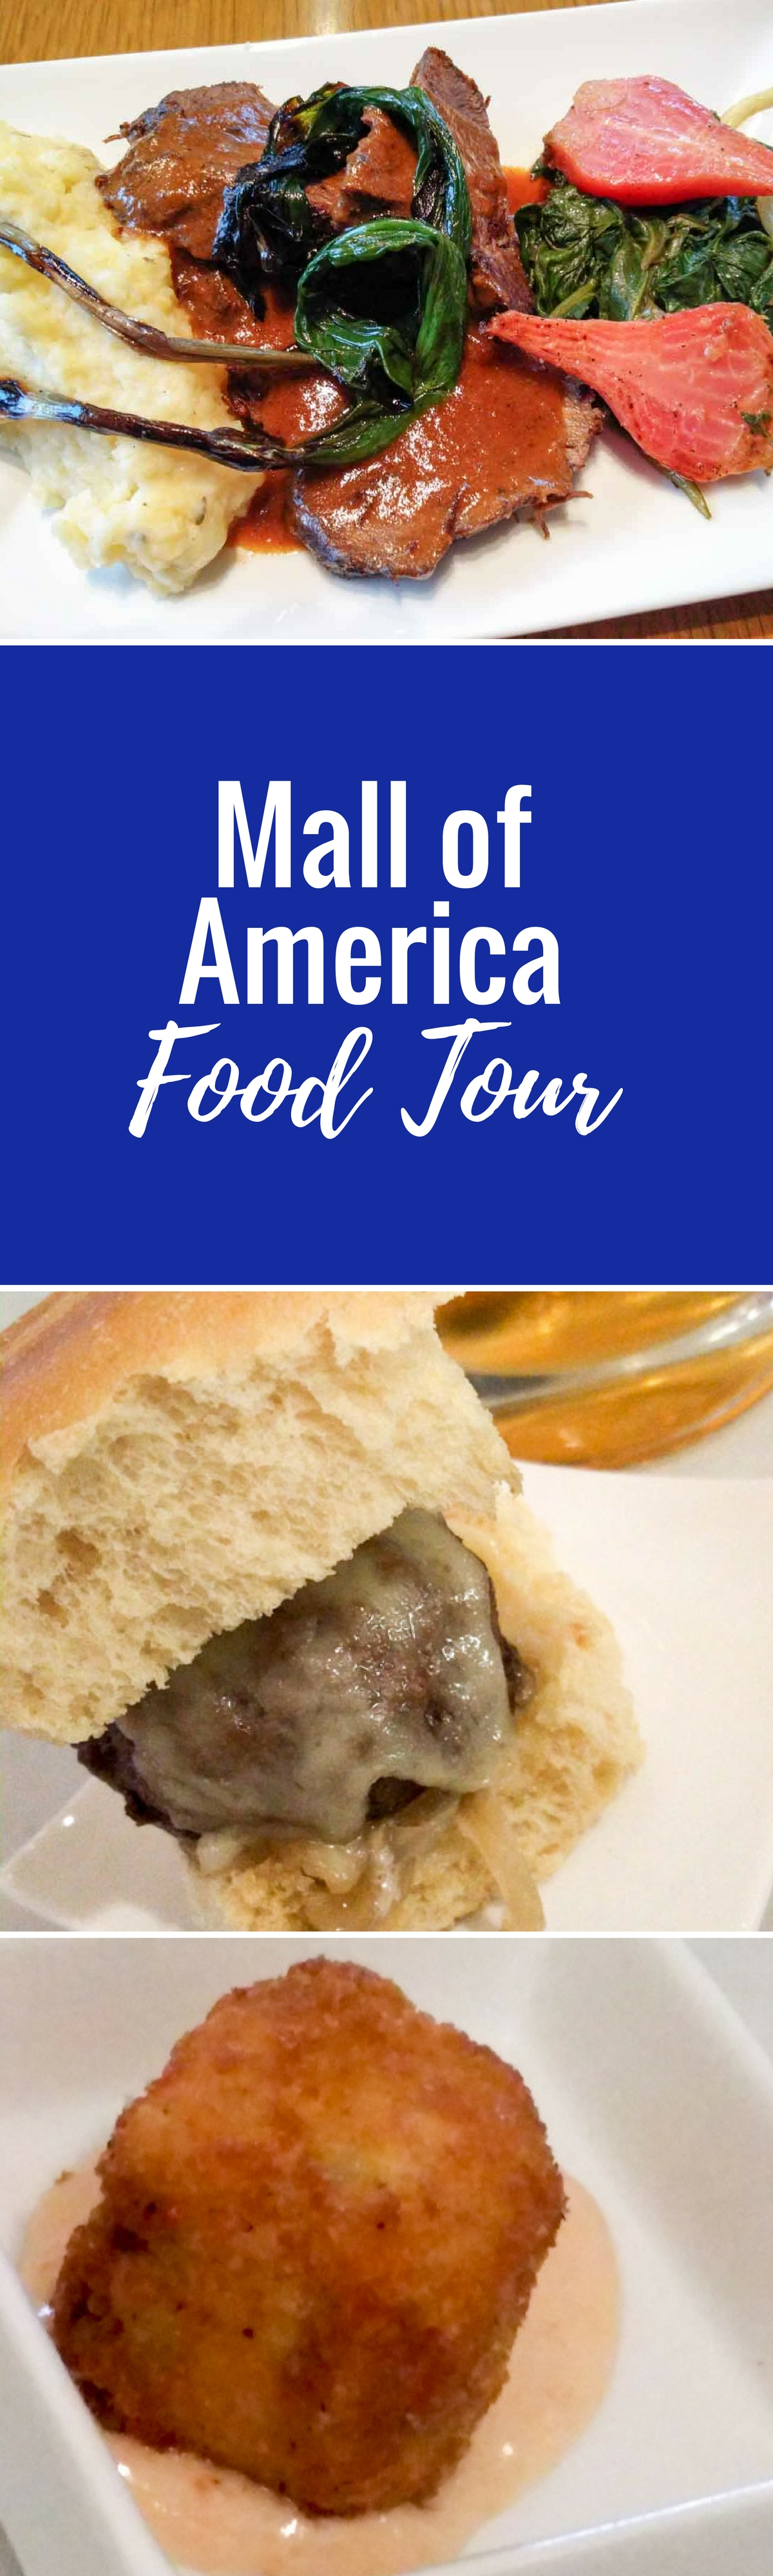 Mall of america food tour seriously seriously food